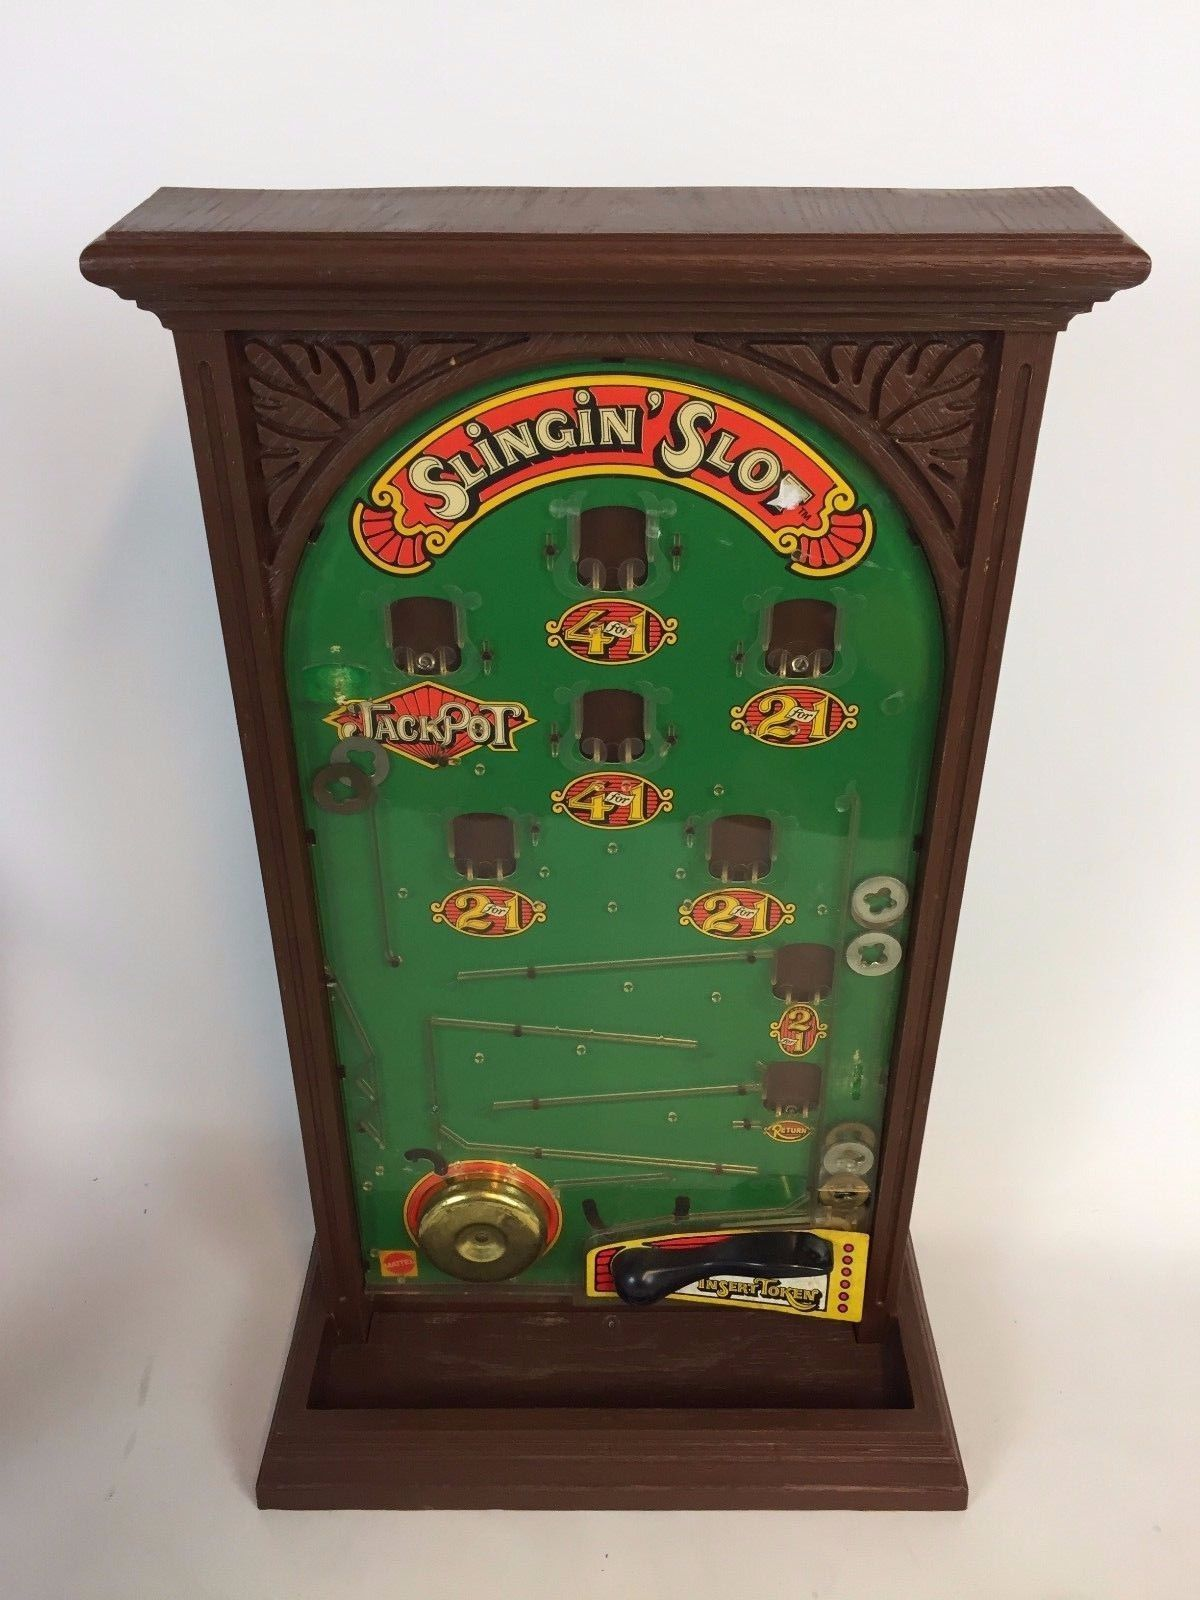 1973 Slingin' Slot Arcade Game with Tokens, Arcade games